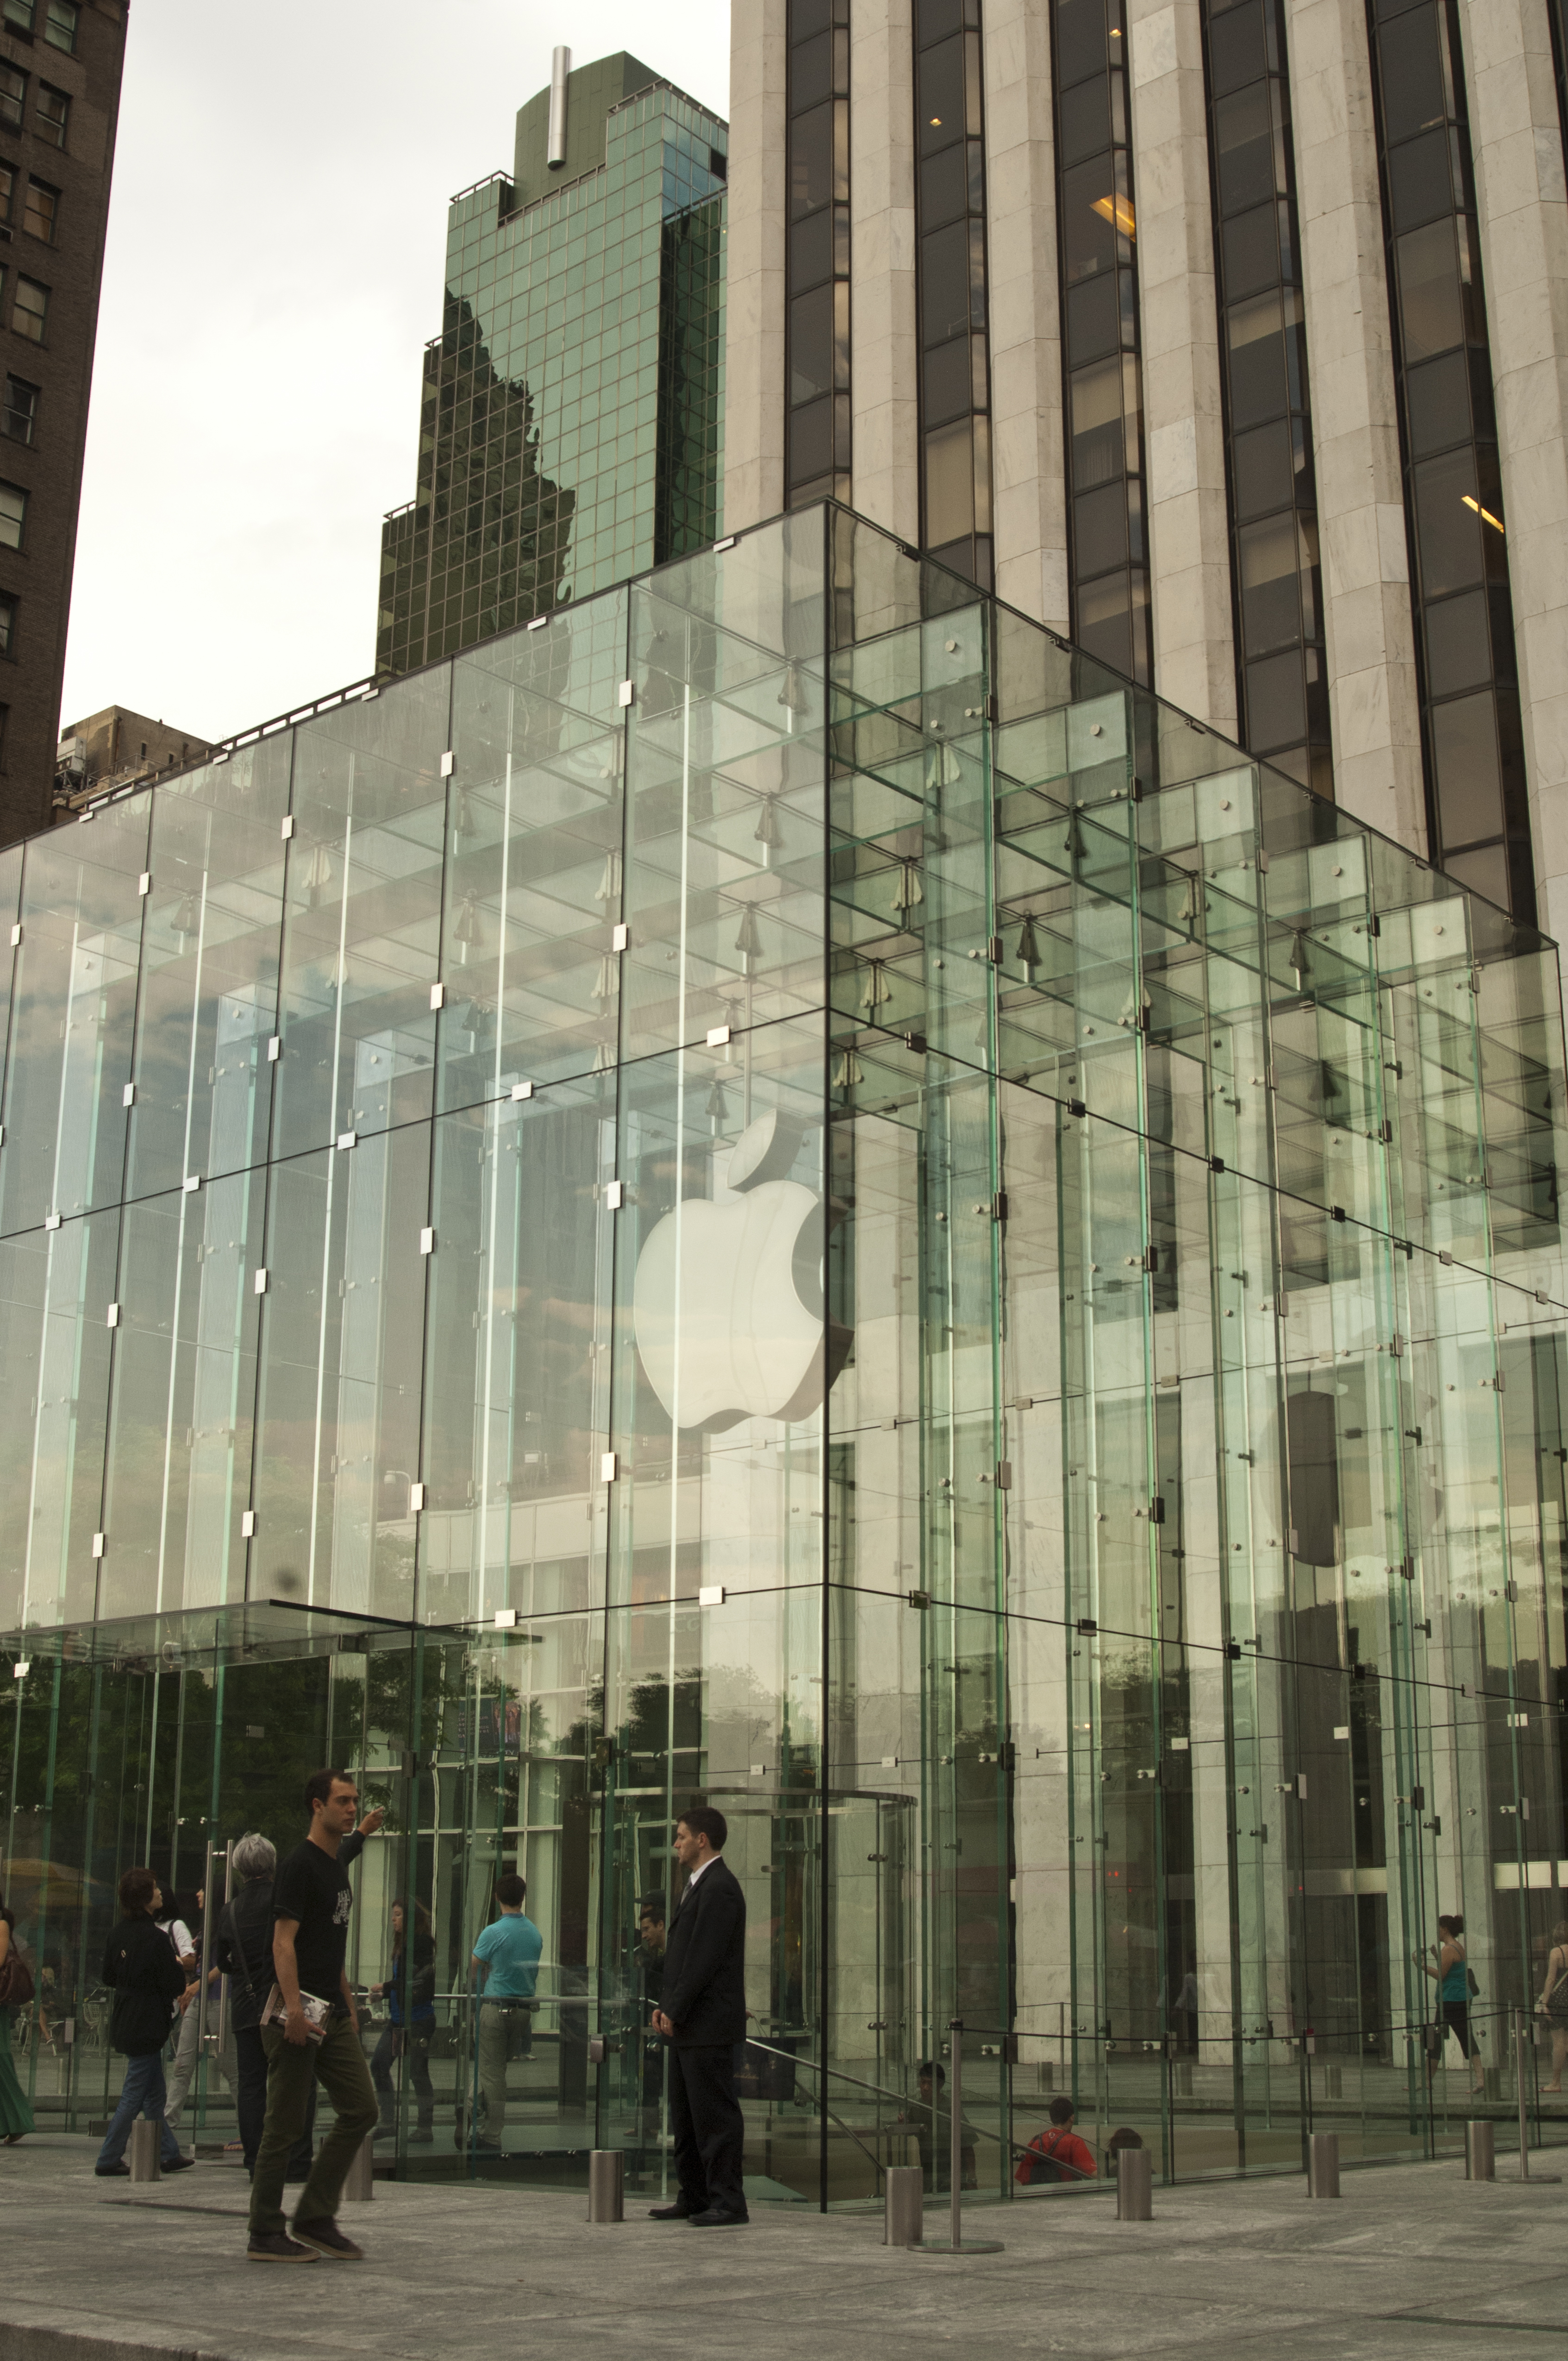 An Apple store in New York, New York.